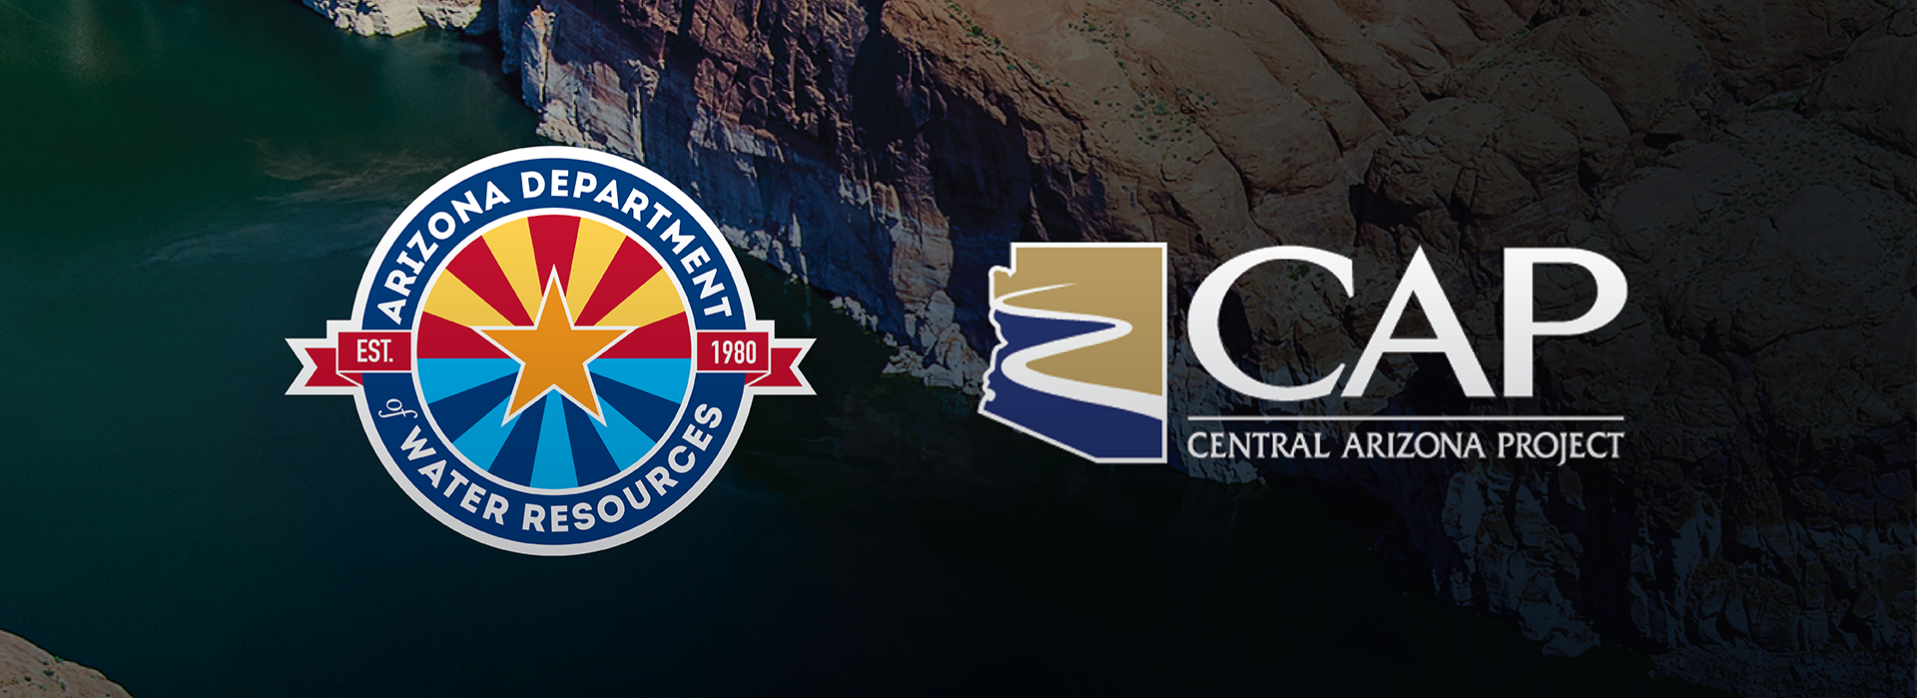 A Joint Colorado River Shortage Preparedness Briefing is scheduled for April 29